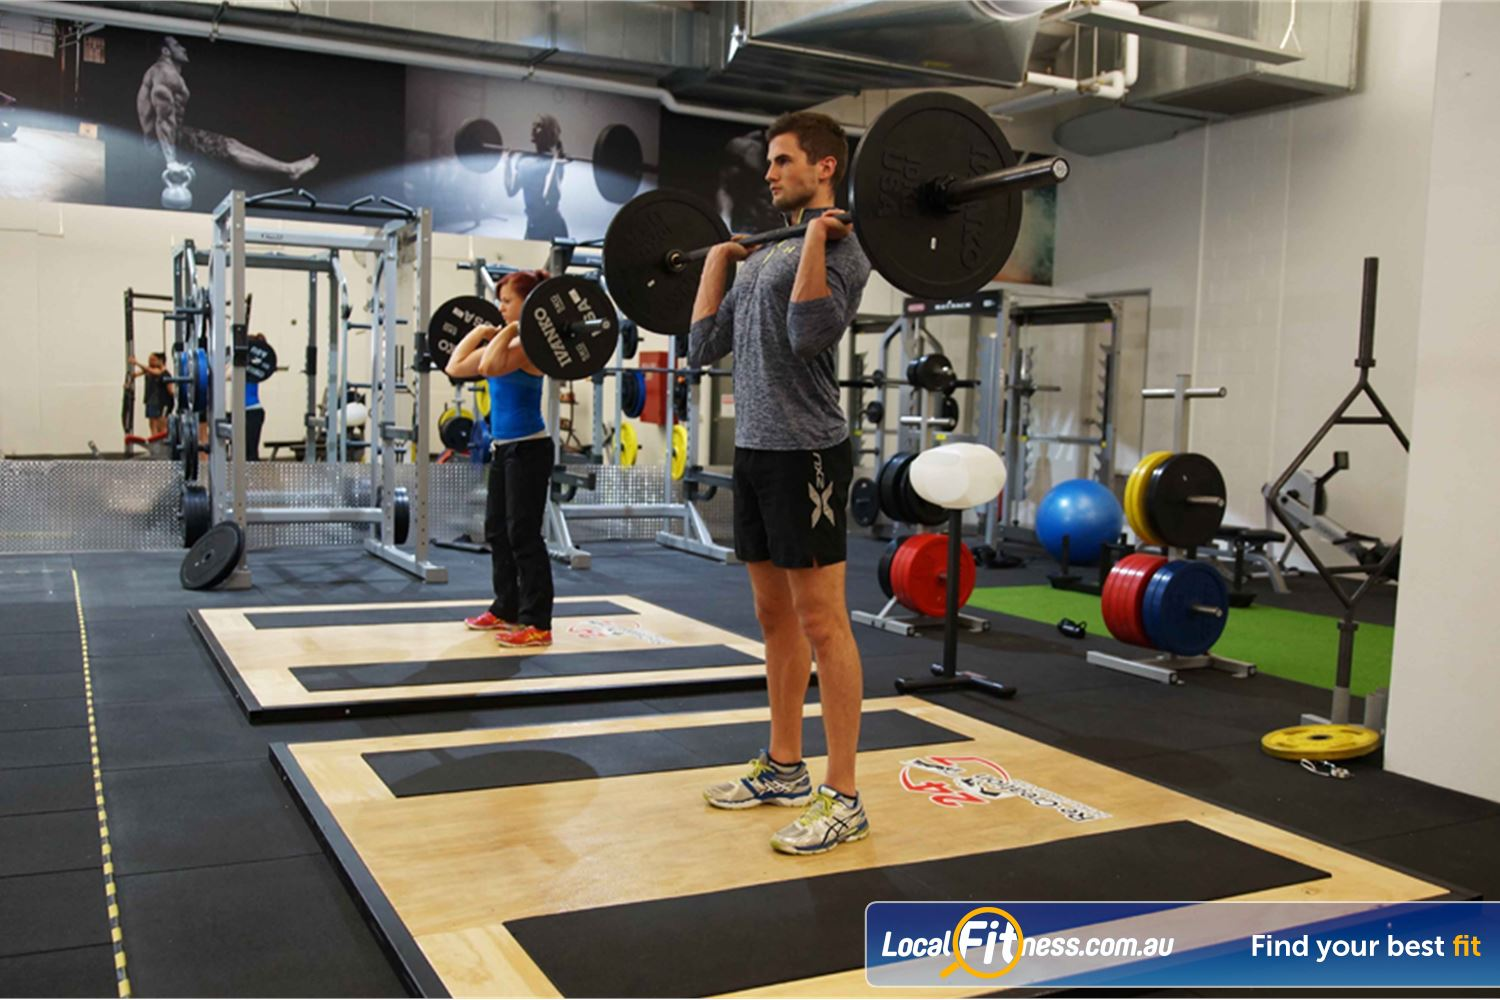 Goodlife Health Clubs South Melbourne Multiple lifting platforms in our South Melbourne HIIT gym.